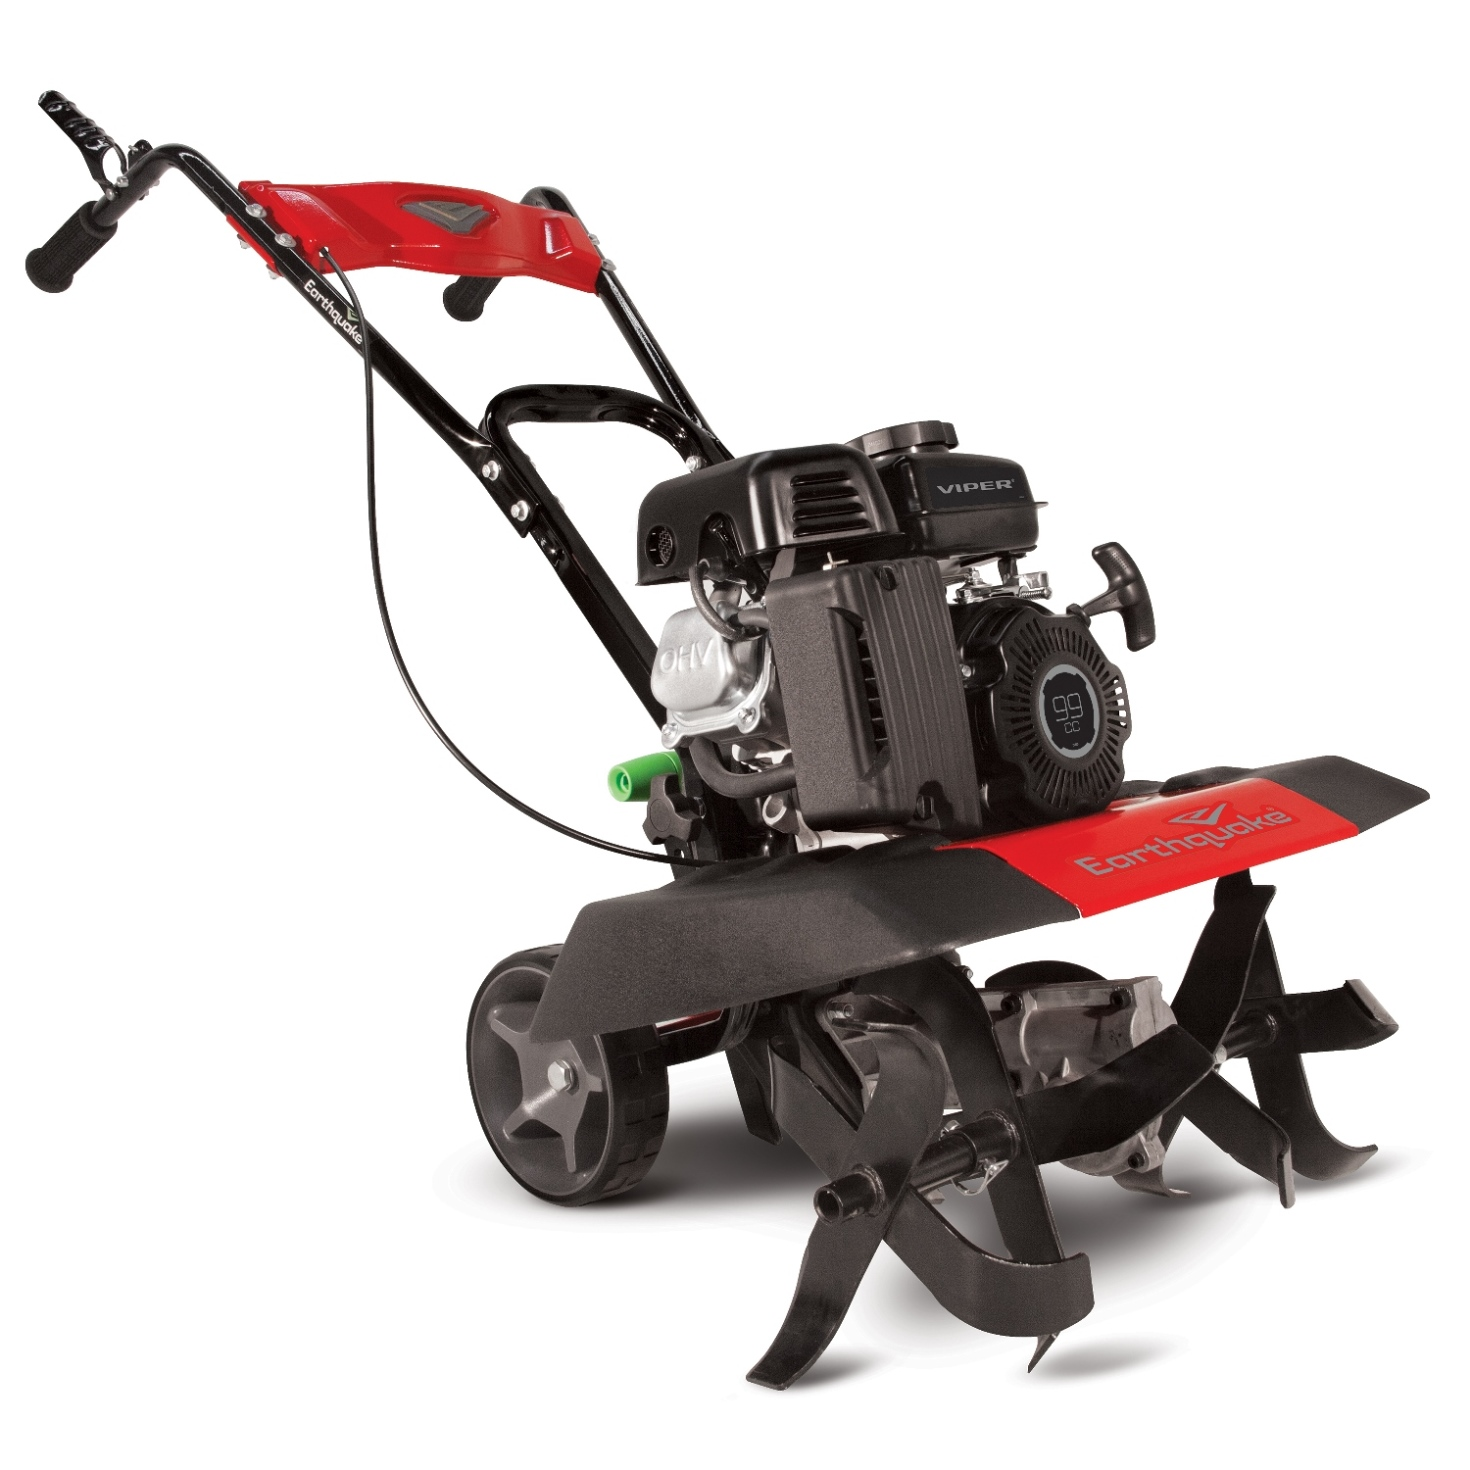 The Earthquake VERSA Tiller Cultivator is backed by a 5-year warranty